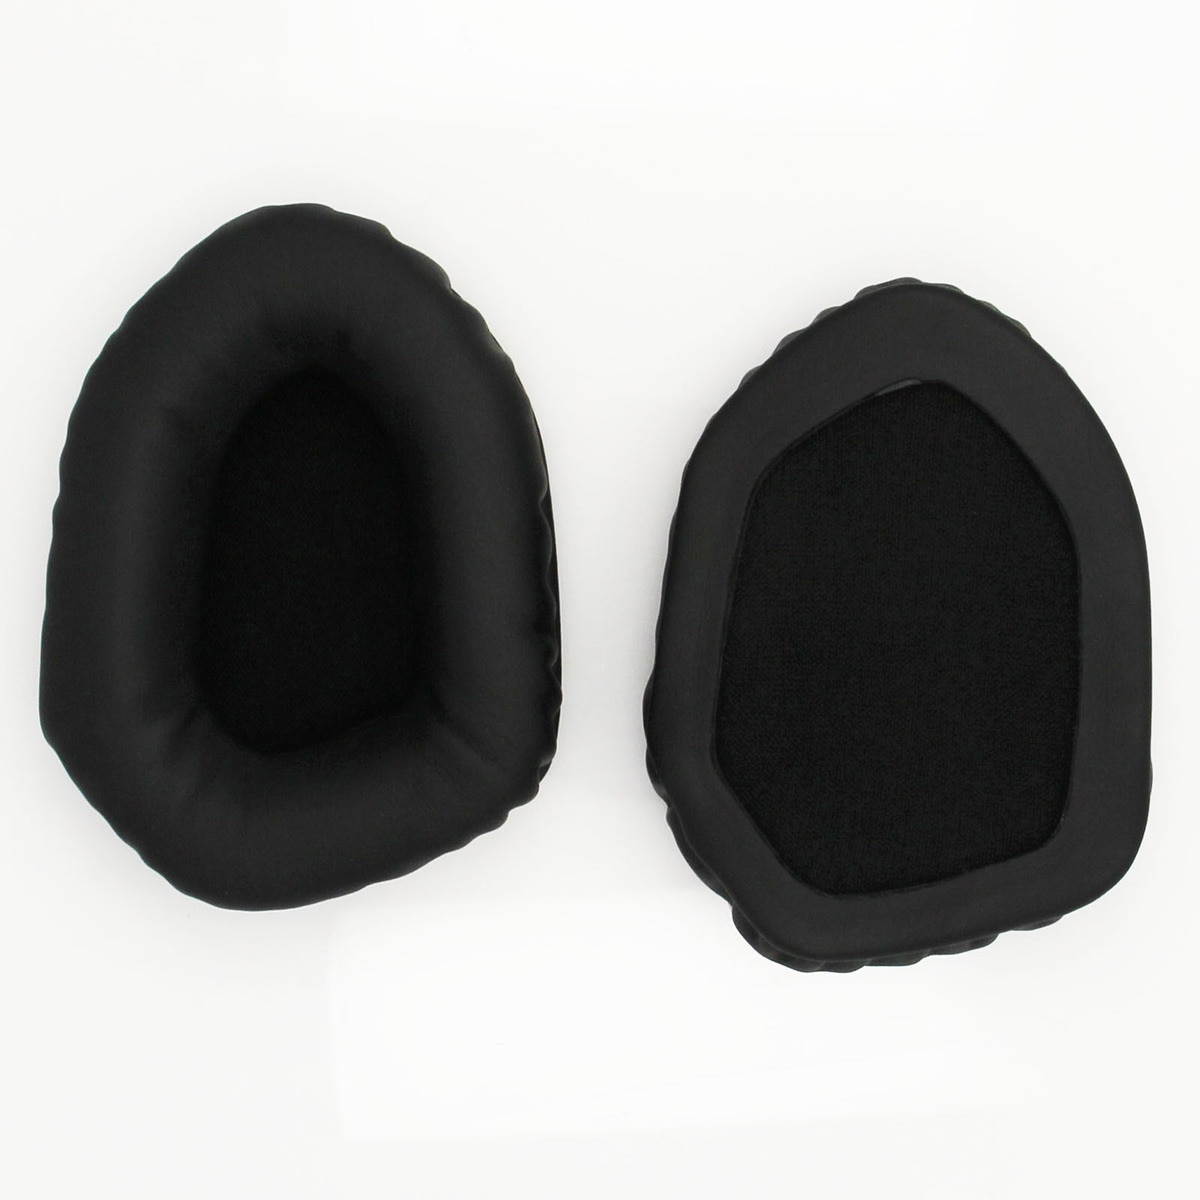 High quality Replacement Earpads Ear Pads Cushions for Logitech UE4500 Headset headphones enlarge